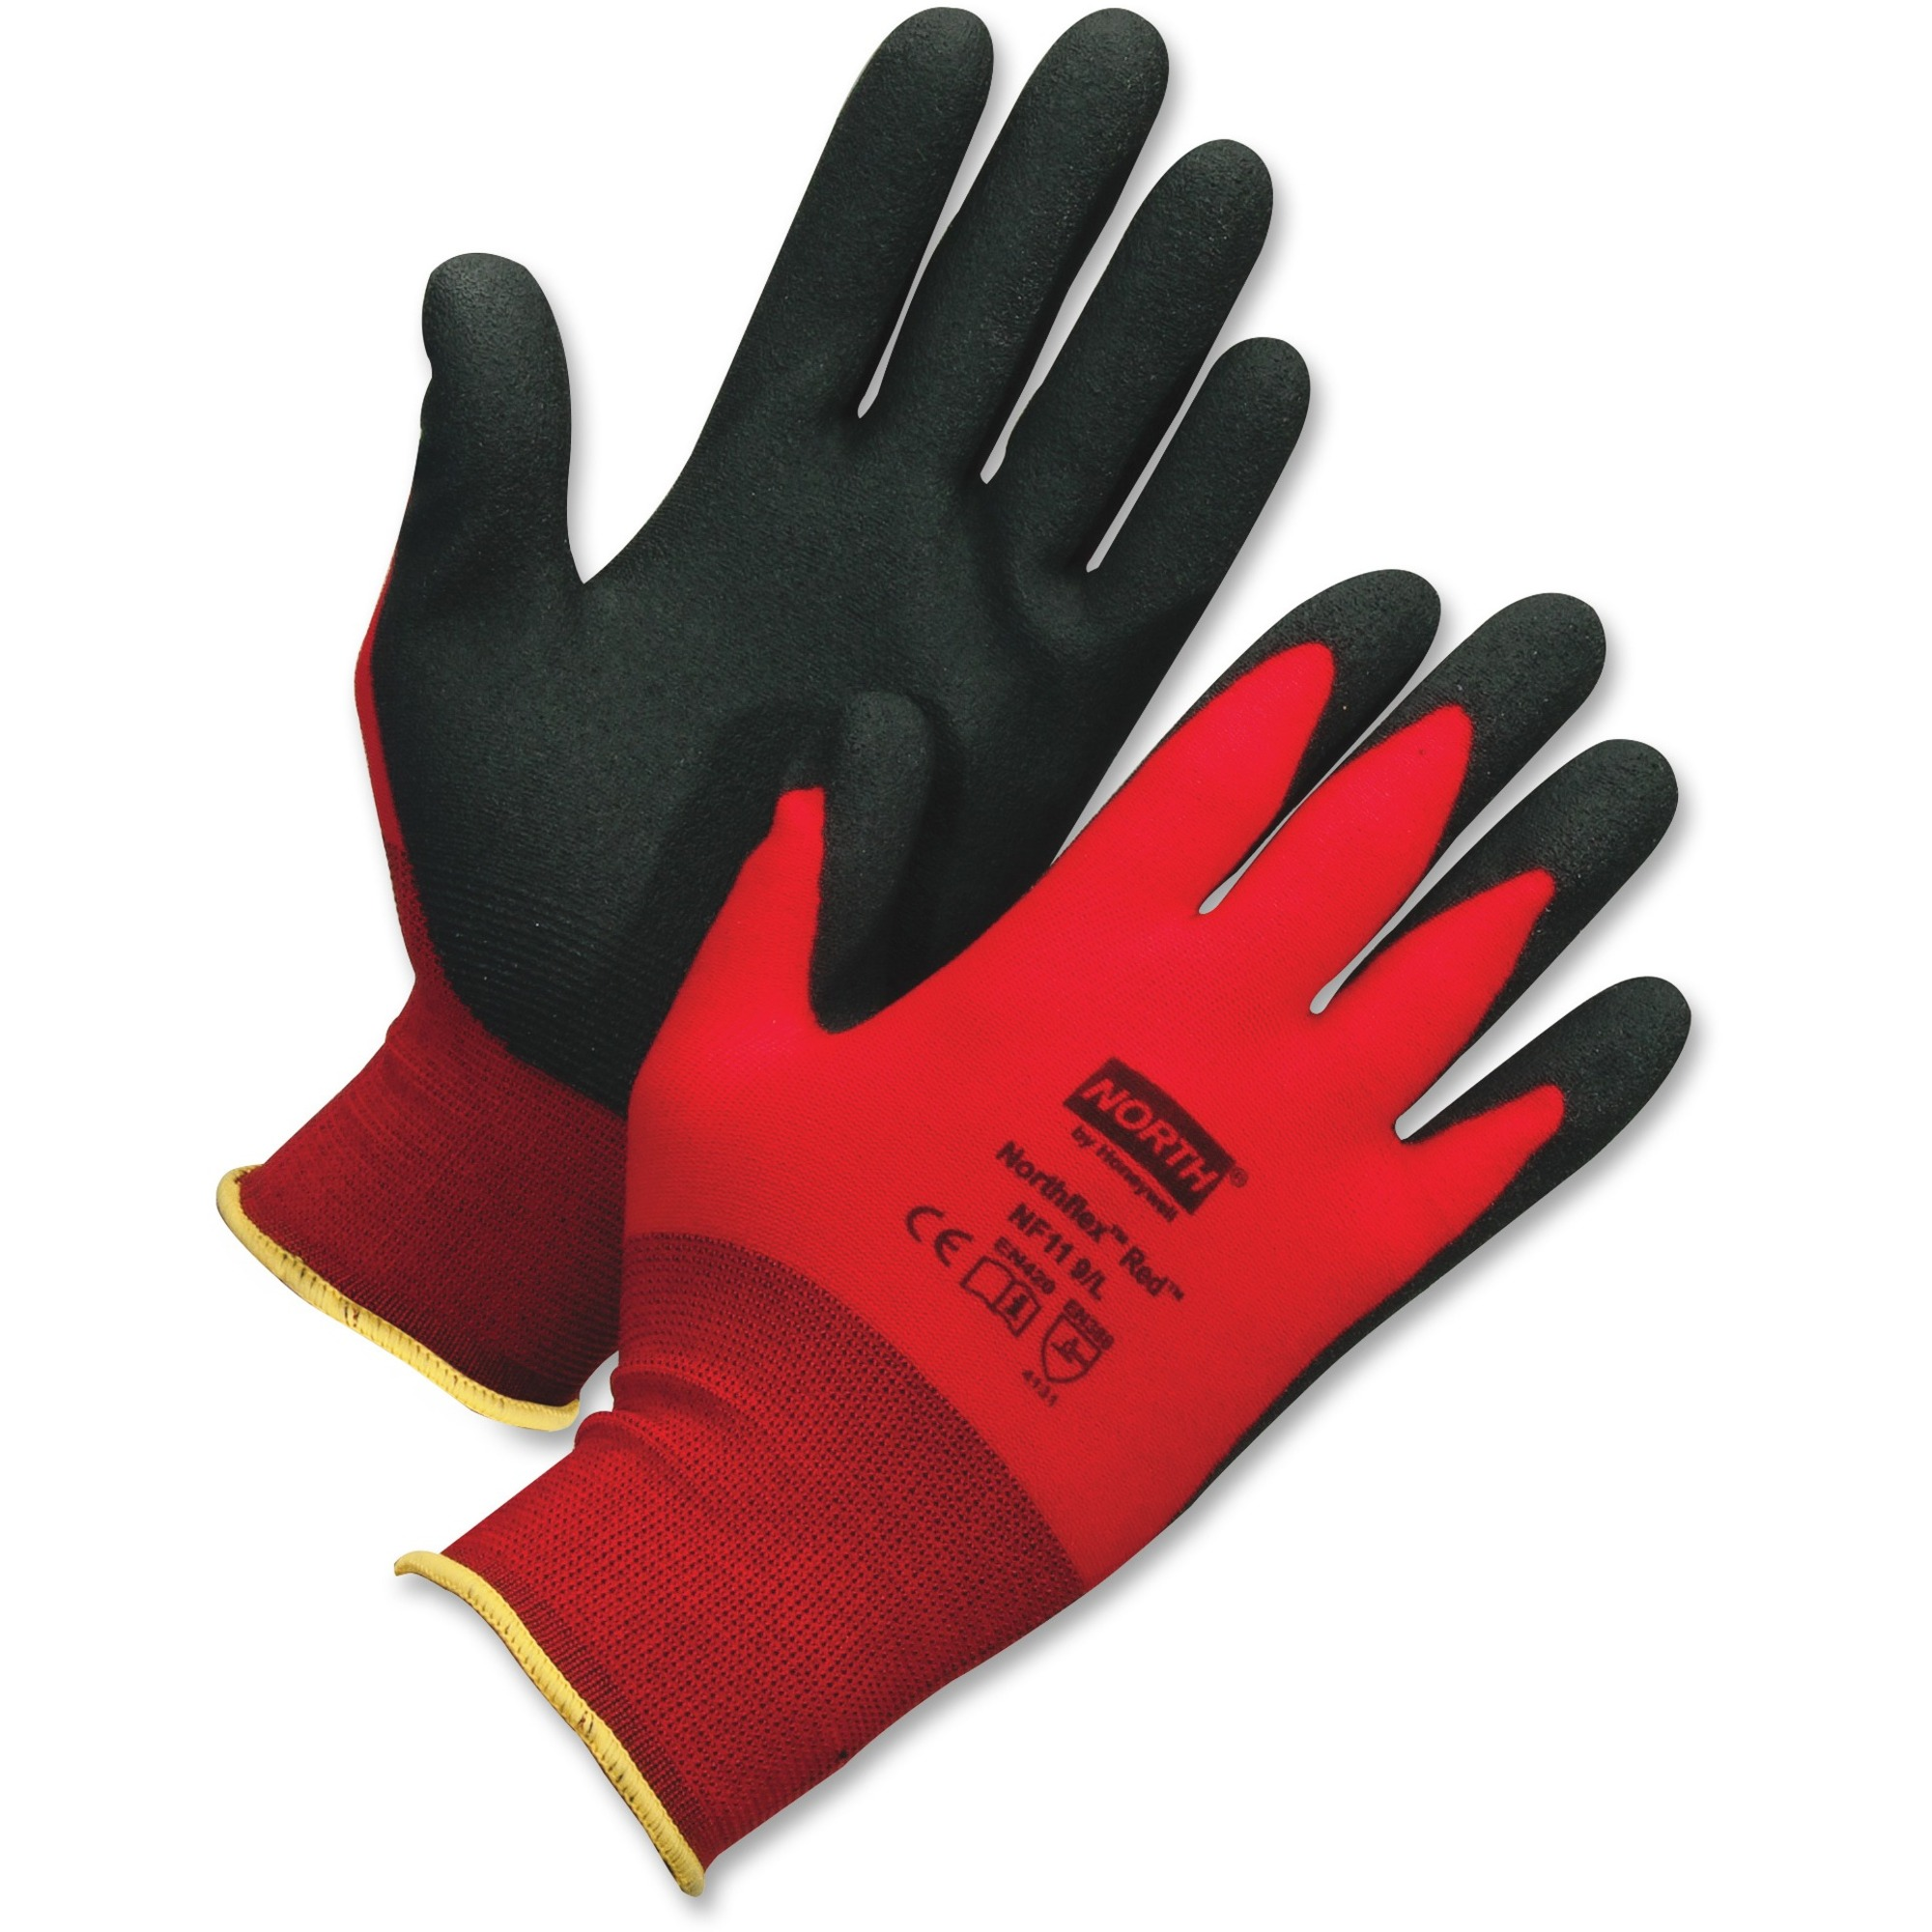 NORTH NorthFlex Red XL Work Gloves - Polyvinyl Chloride (PVC) Coating - X-Large Size - Nylon - Red, Black, White - Lightweight, Knitted Cuff - For Manufacturing, Construction, Agriculture, Municipal Service, General Purpose - 24 / Carton